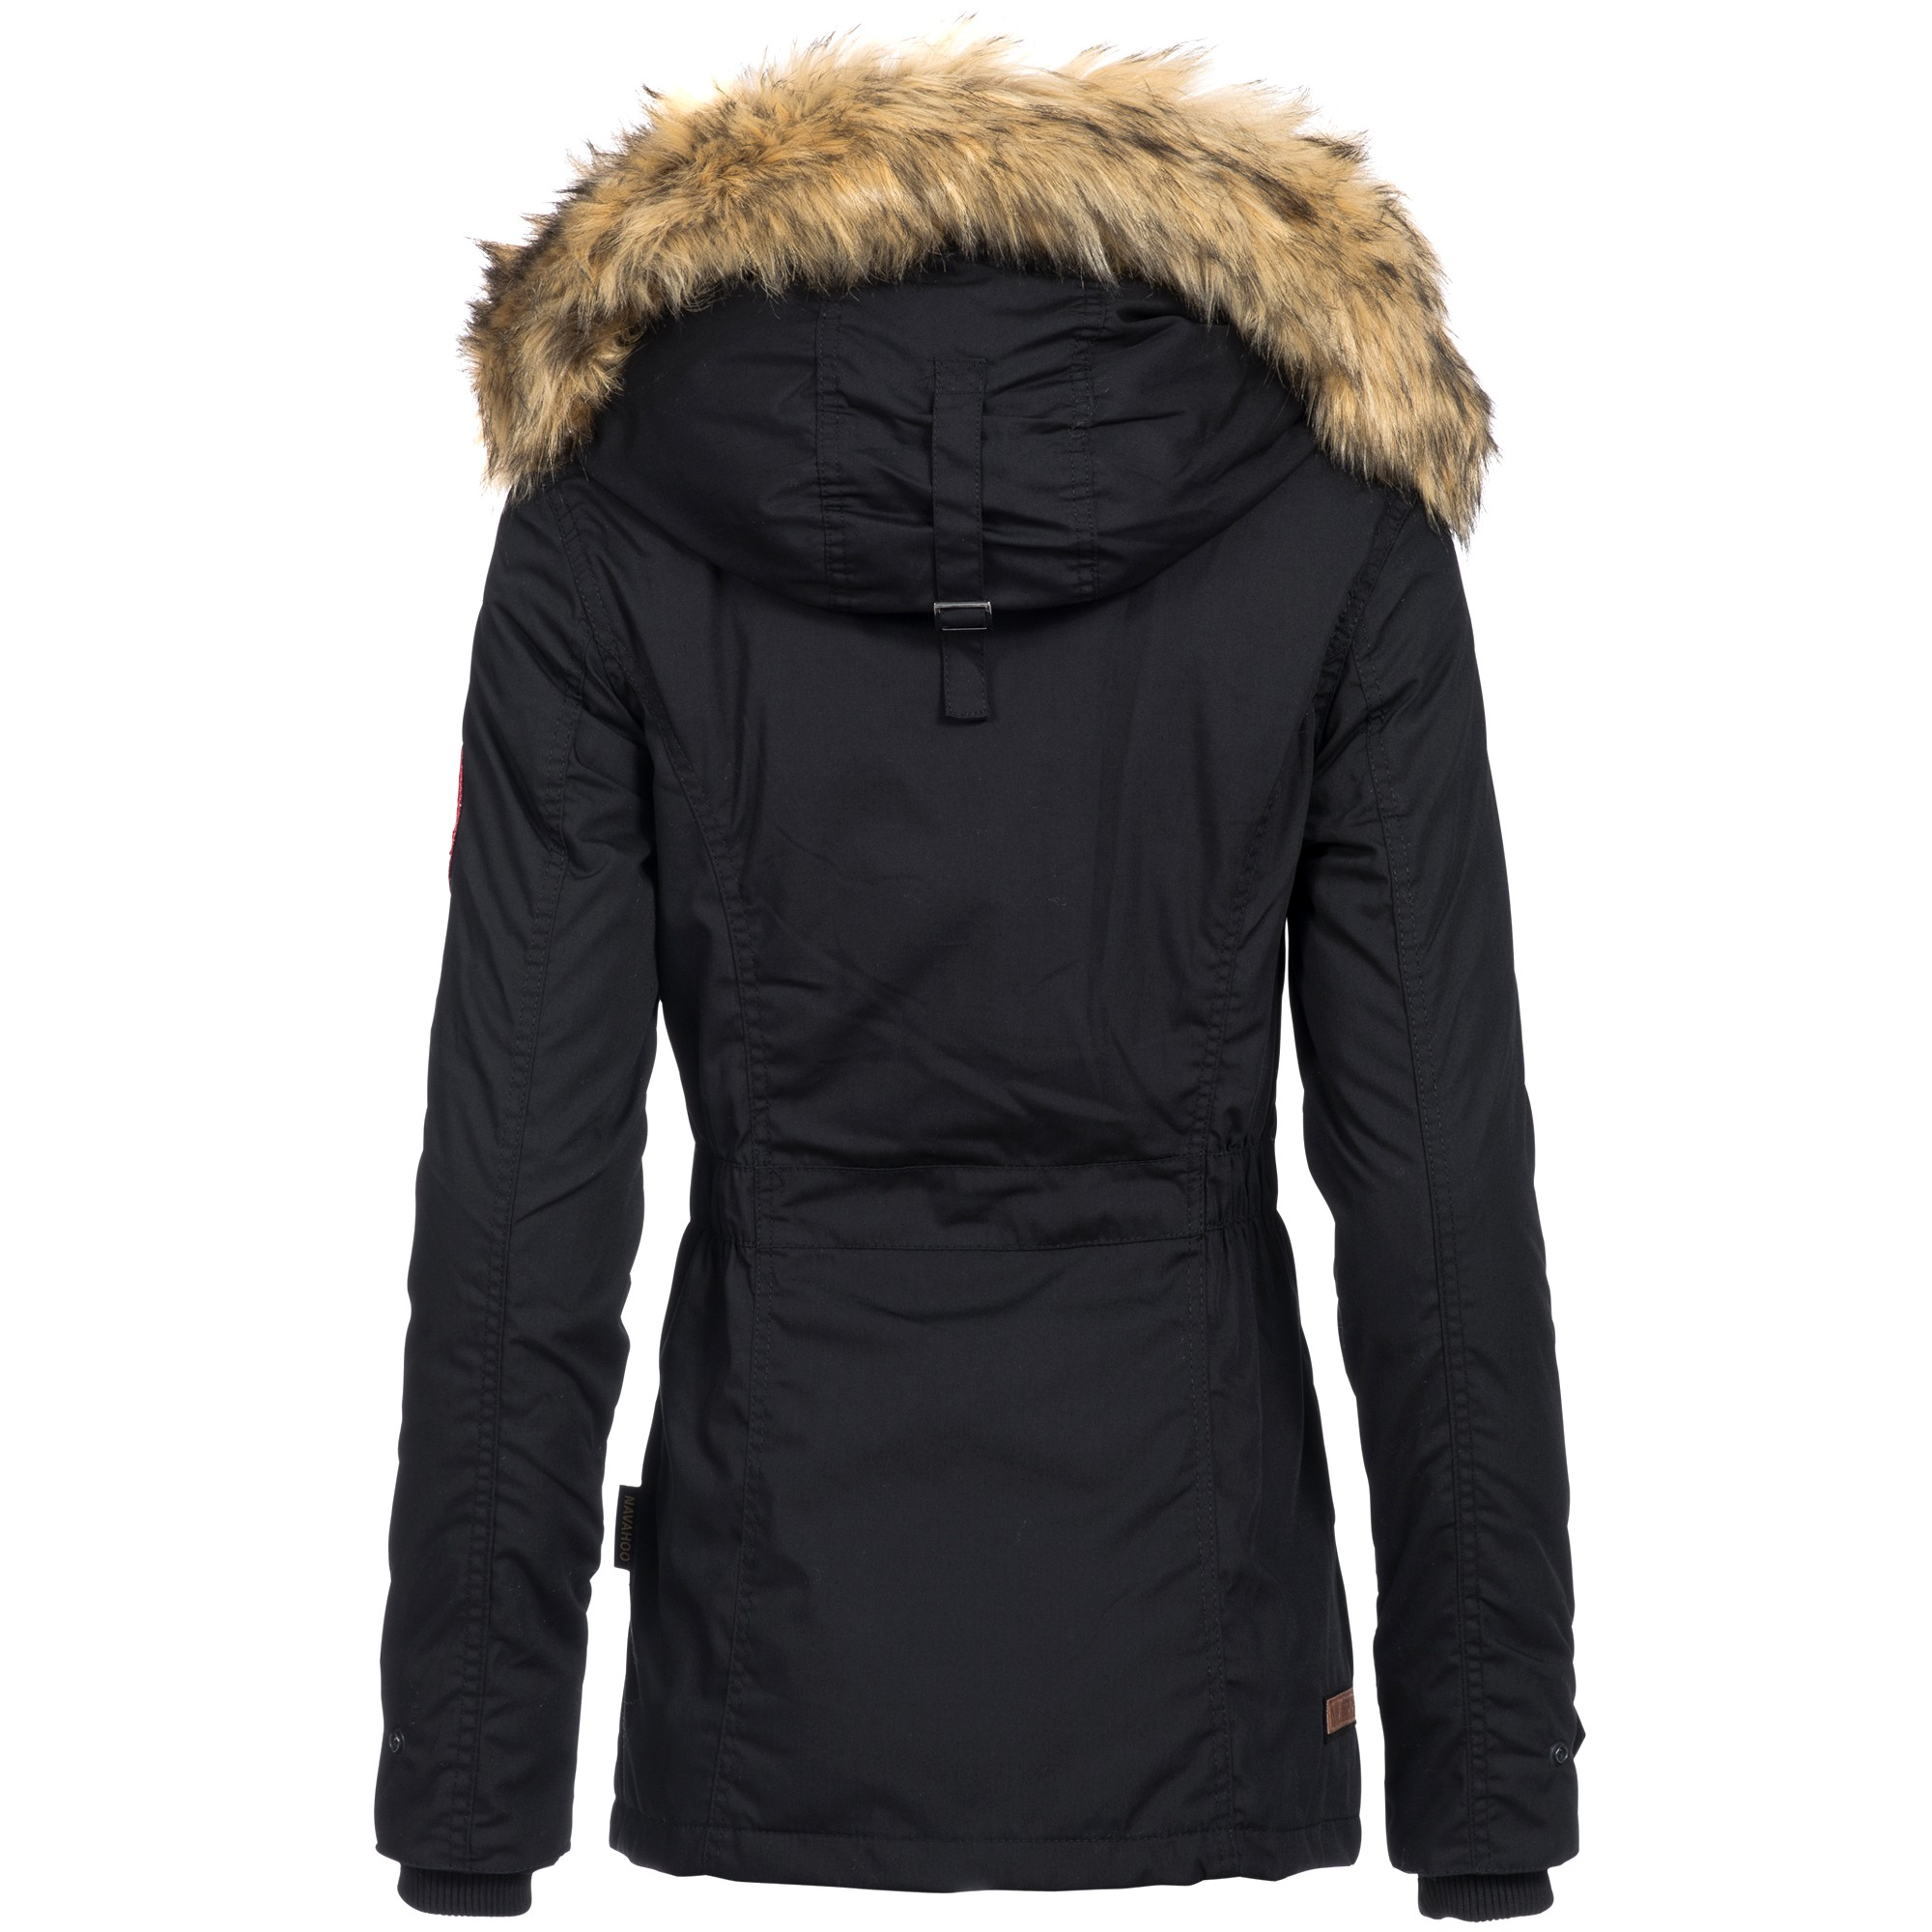 navahoo laura damen jacke parka mantel winterjacke kapuze. Black Bedroom Furniture Sets. Home Design Ideas